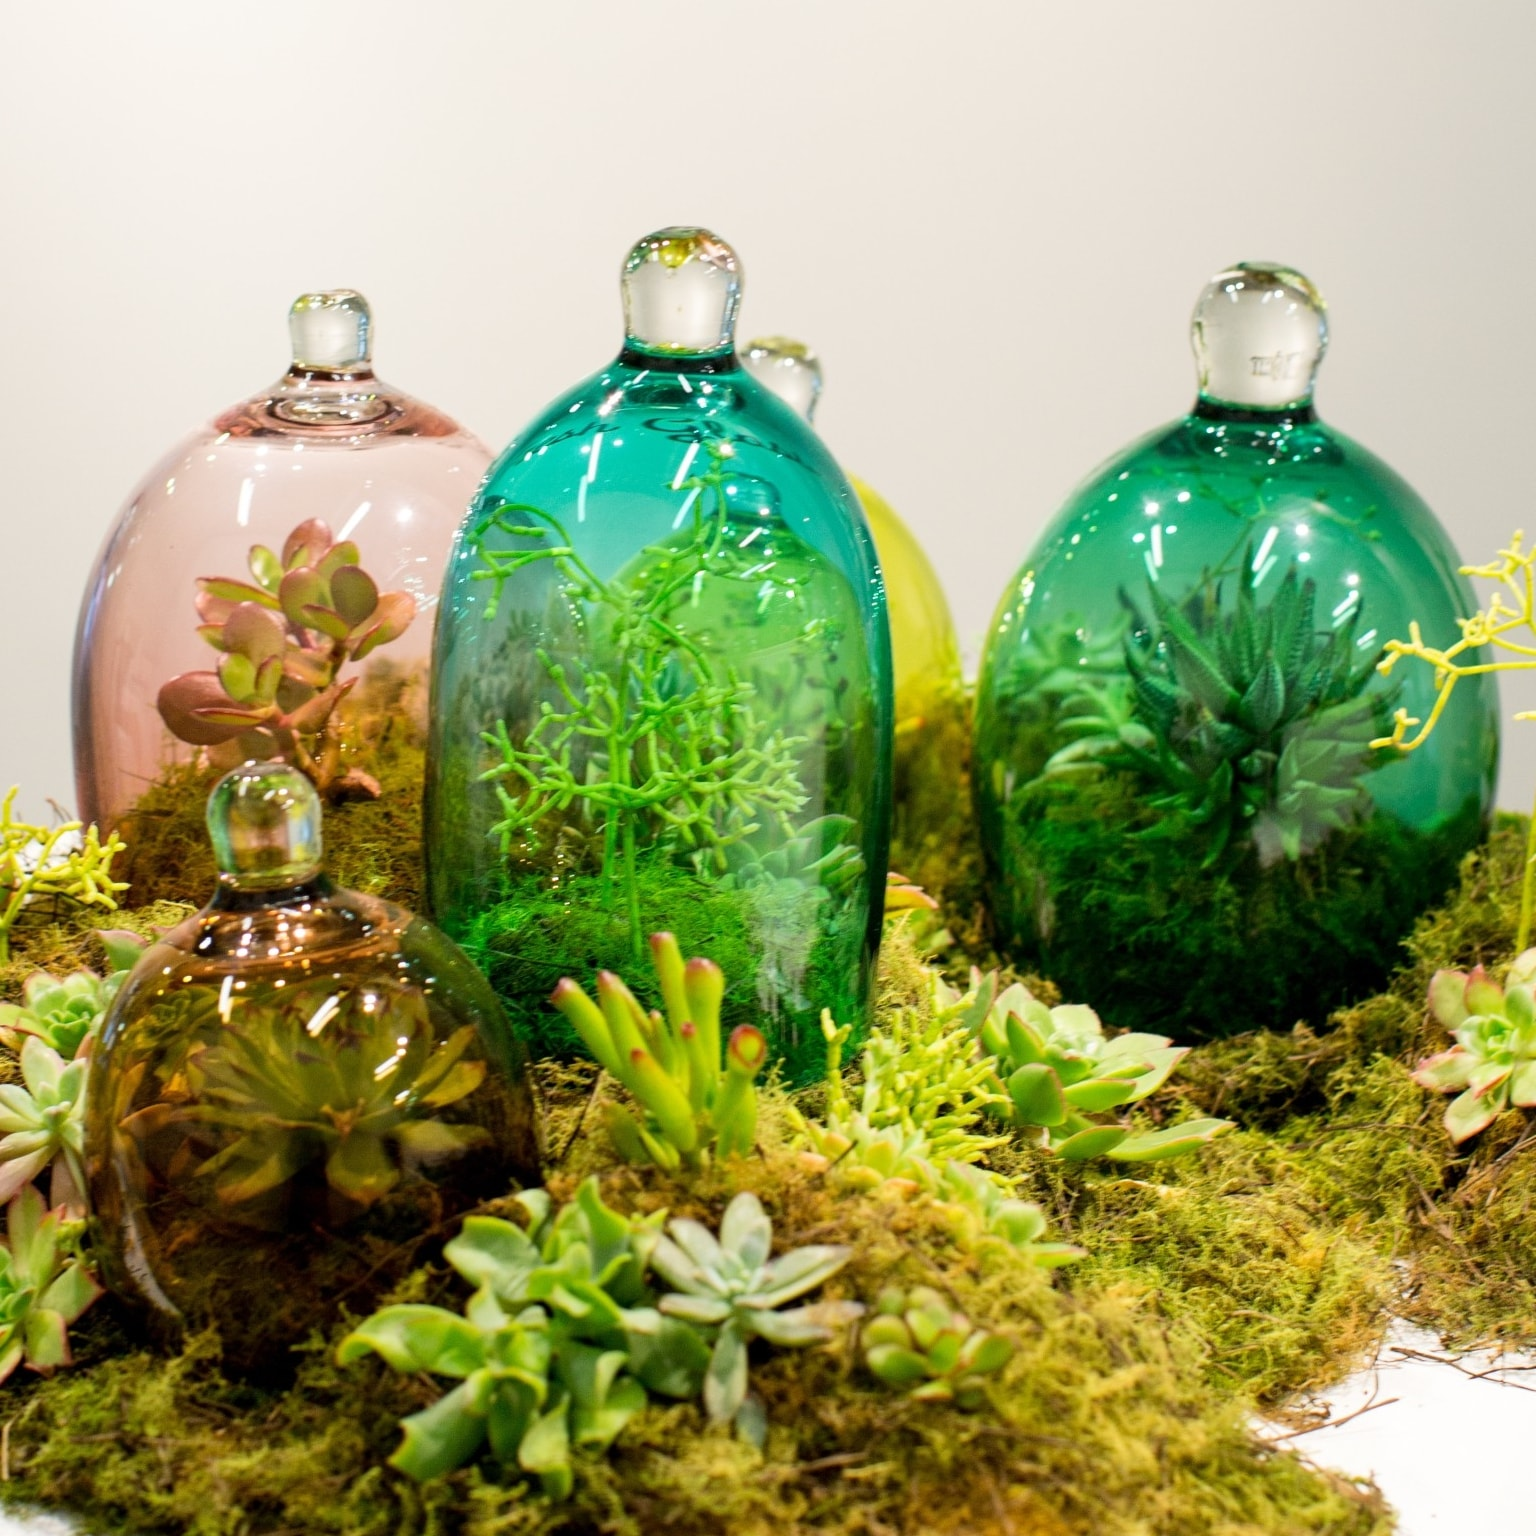 Artistic display at Canberra Glassworks in Kingston © VisitCanberra